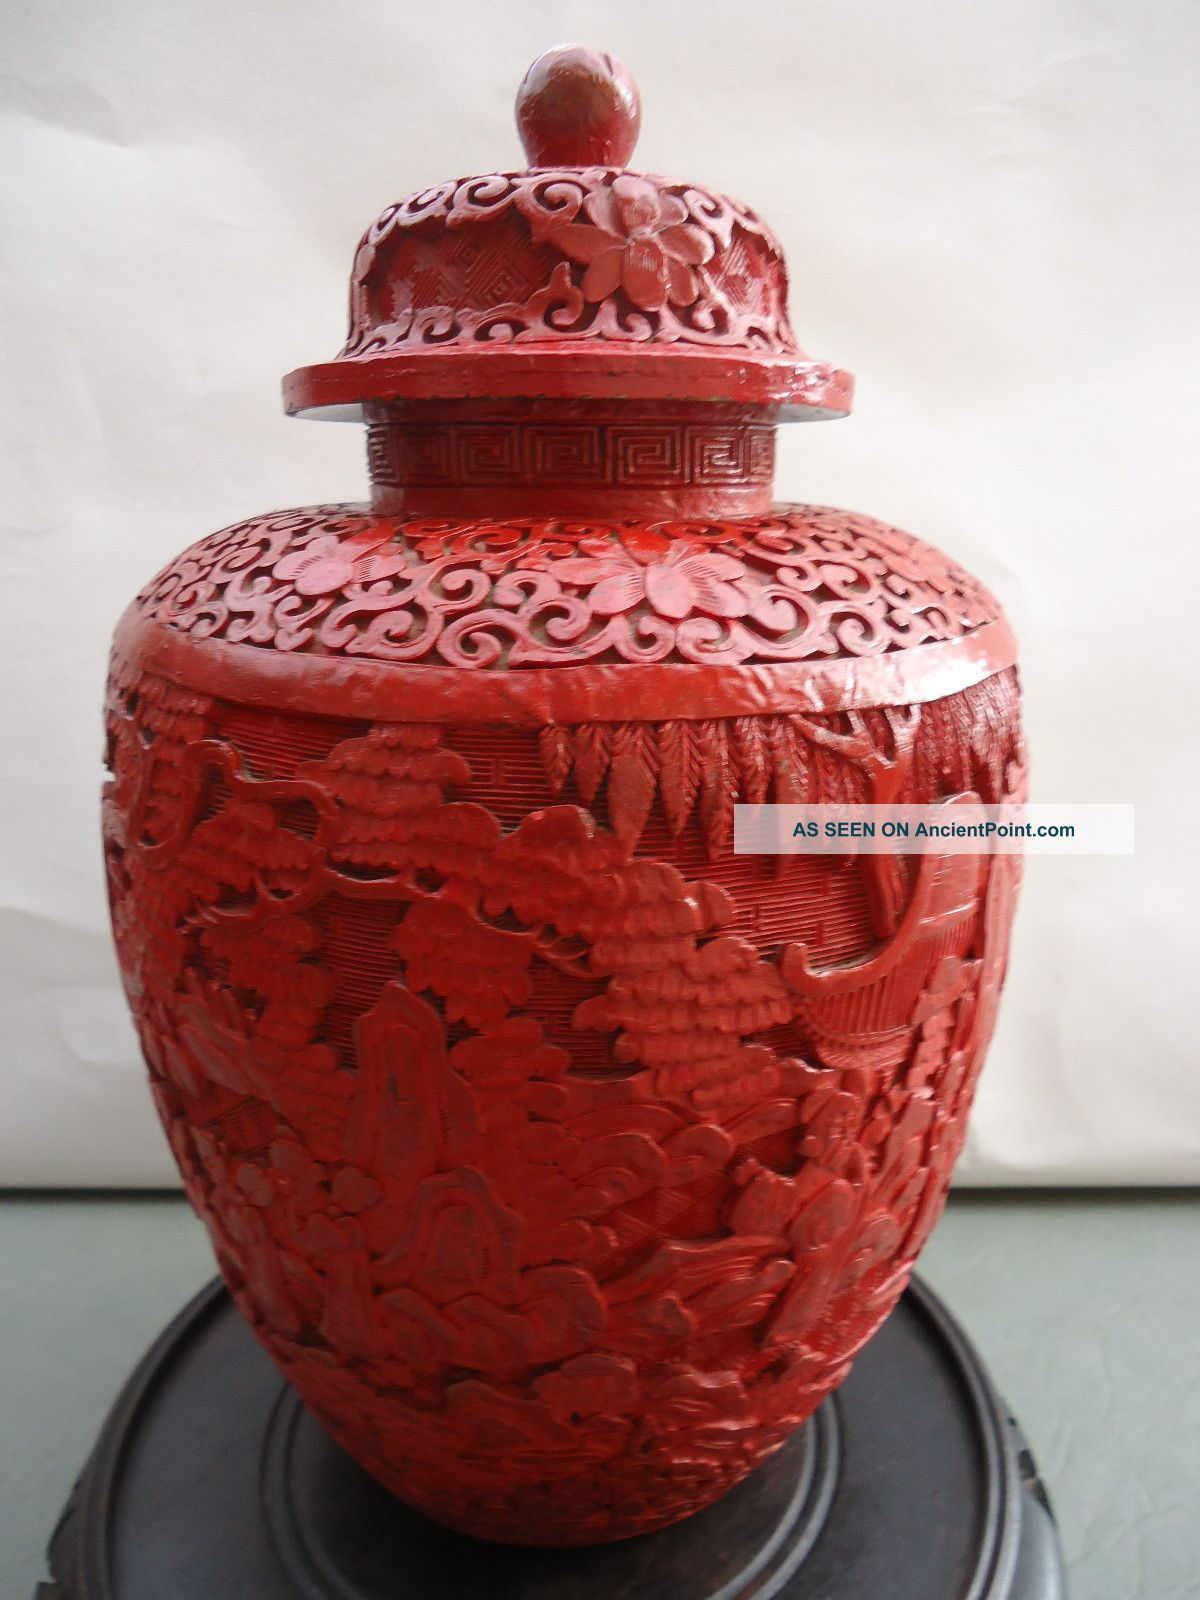 Guaranteed Carved Antique Cinnabar - 1880 Chinese Large Heavy Pot Vase 12x7 1/2 Boxes photo